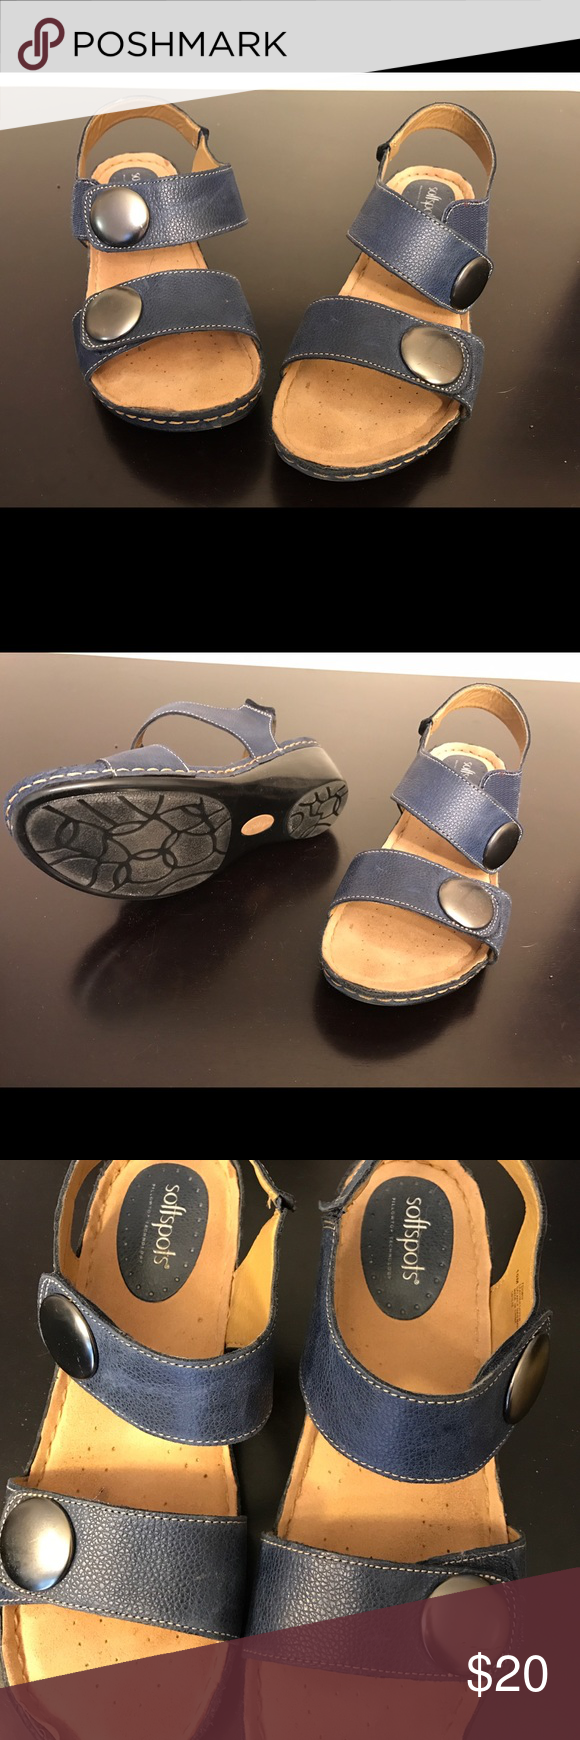 Soft spots, size 10, navy Velcro sandals Soft spots, size 10, navy blue sandal with Velcro snaps and silver accents. Only worn a few times.  She was in pristine condition. softspots Shoes Sandals